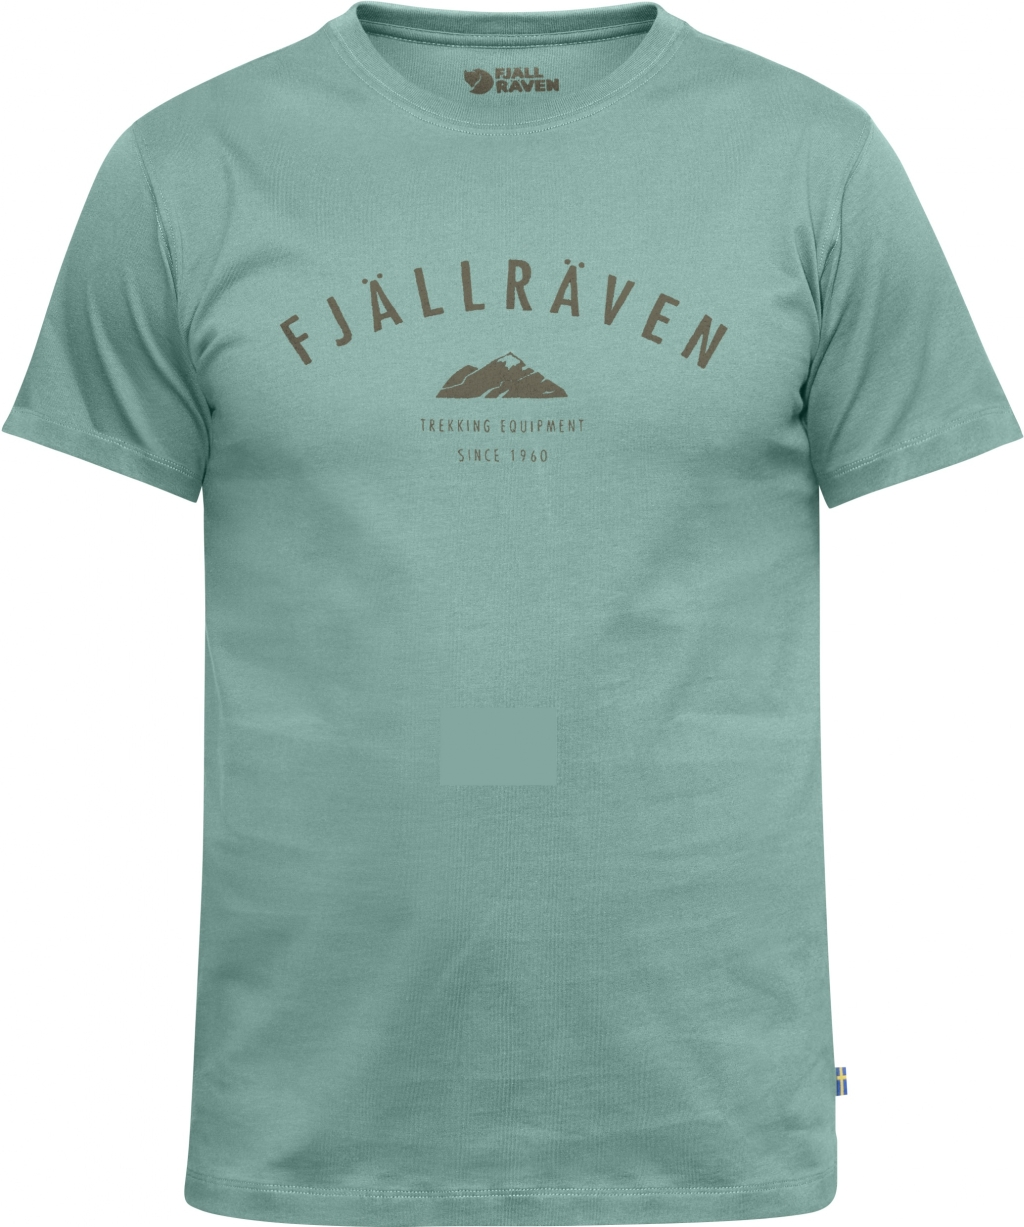 FjallRaven Trekking Equipment T-shirt Creek Blue-30